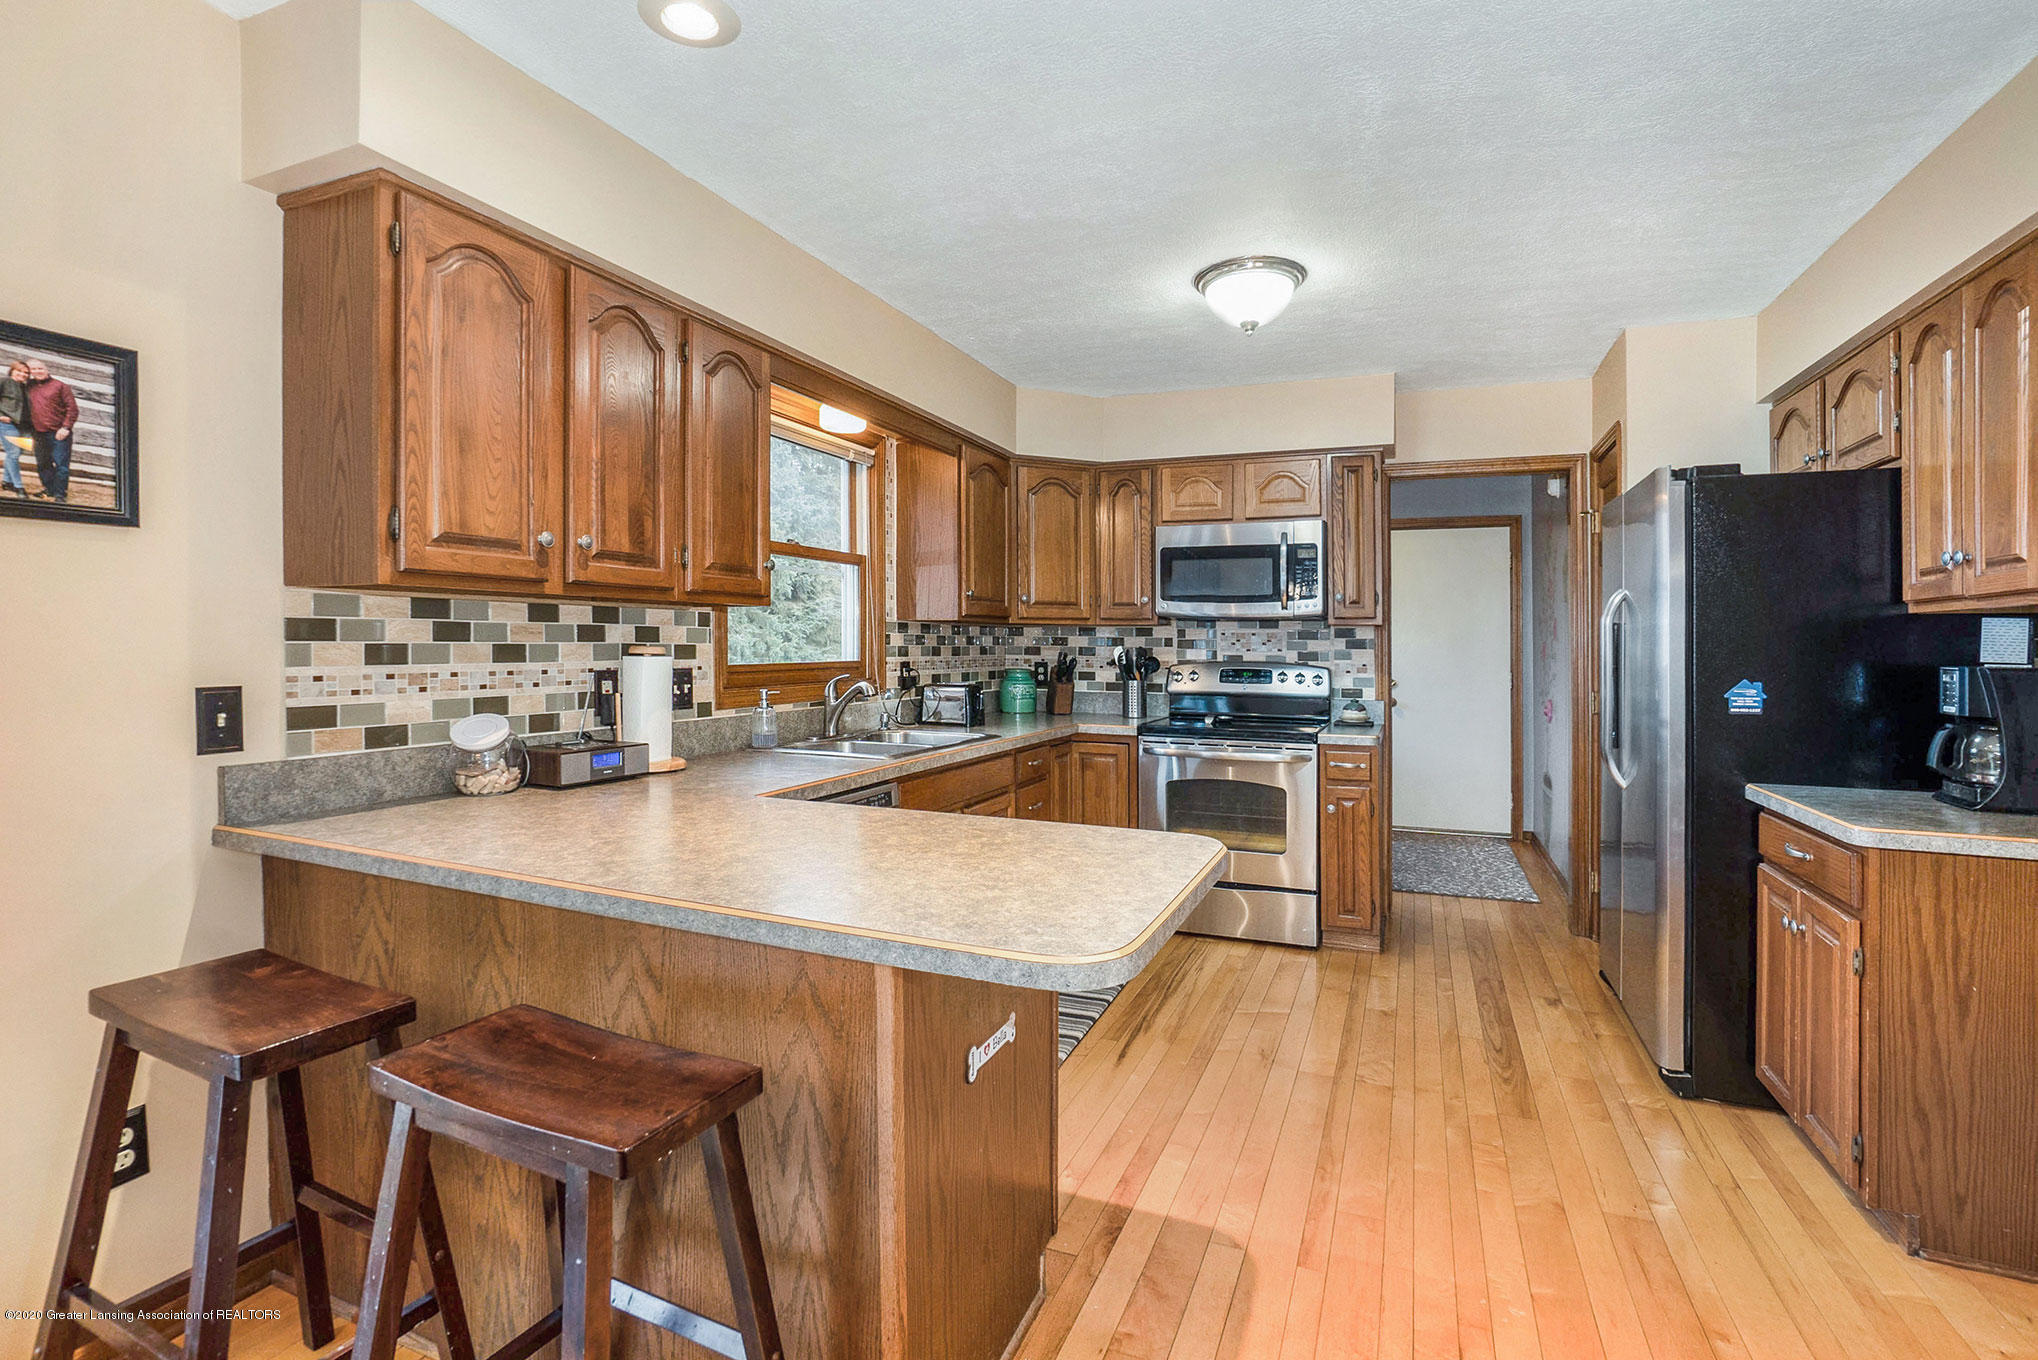 5897 Buttonwood Dr - 13 - 13